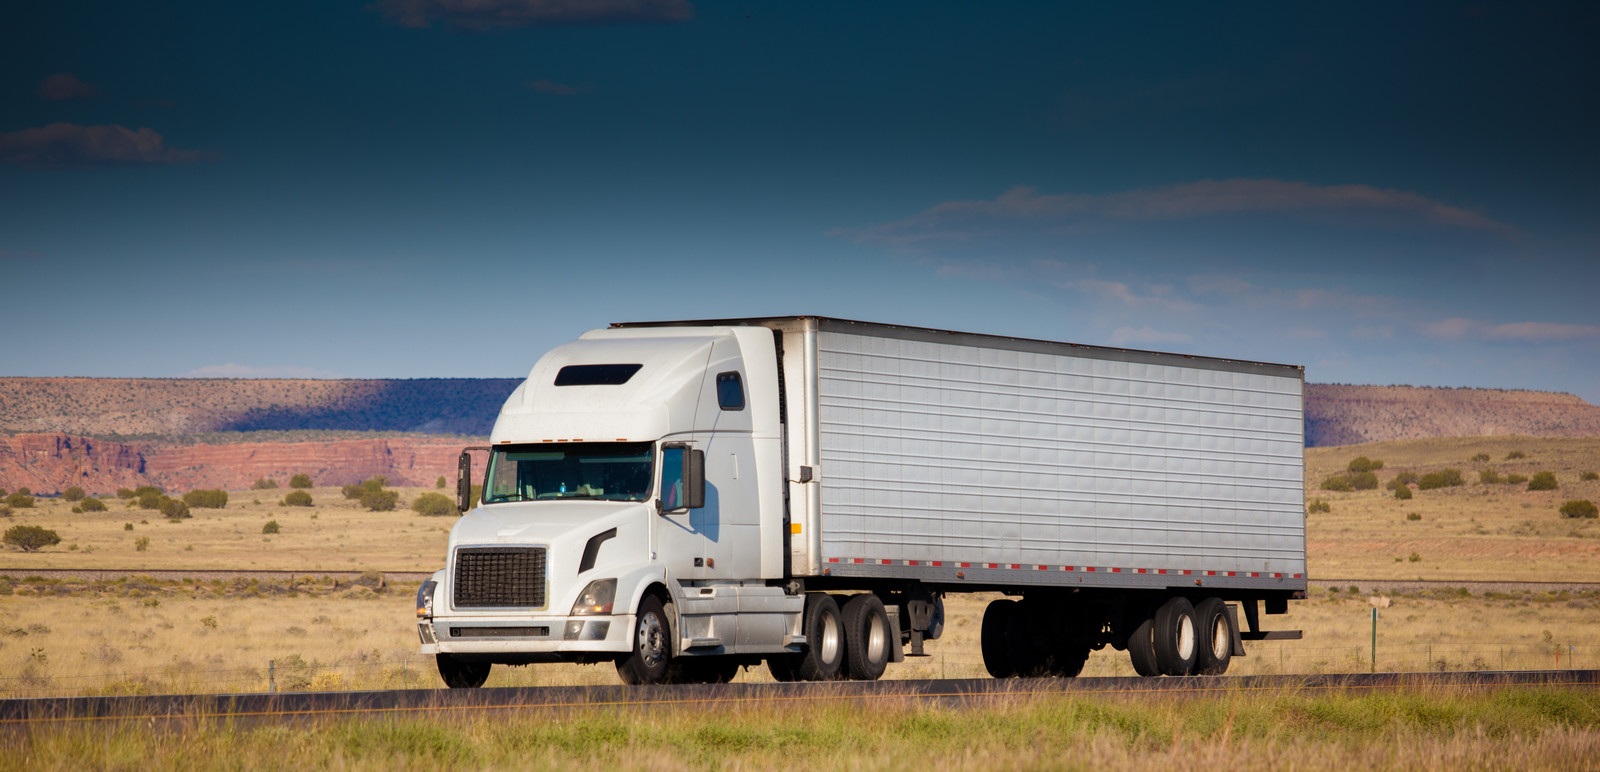 Freight carrier transporting product in Alberta